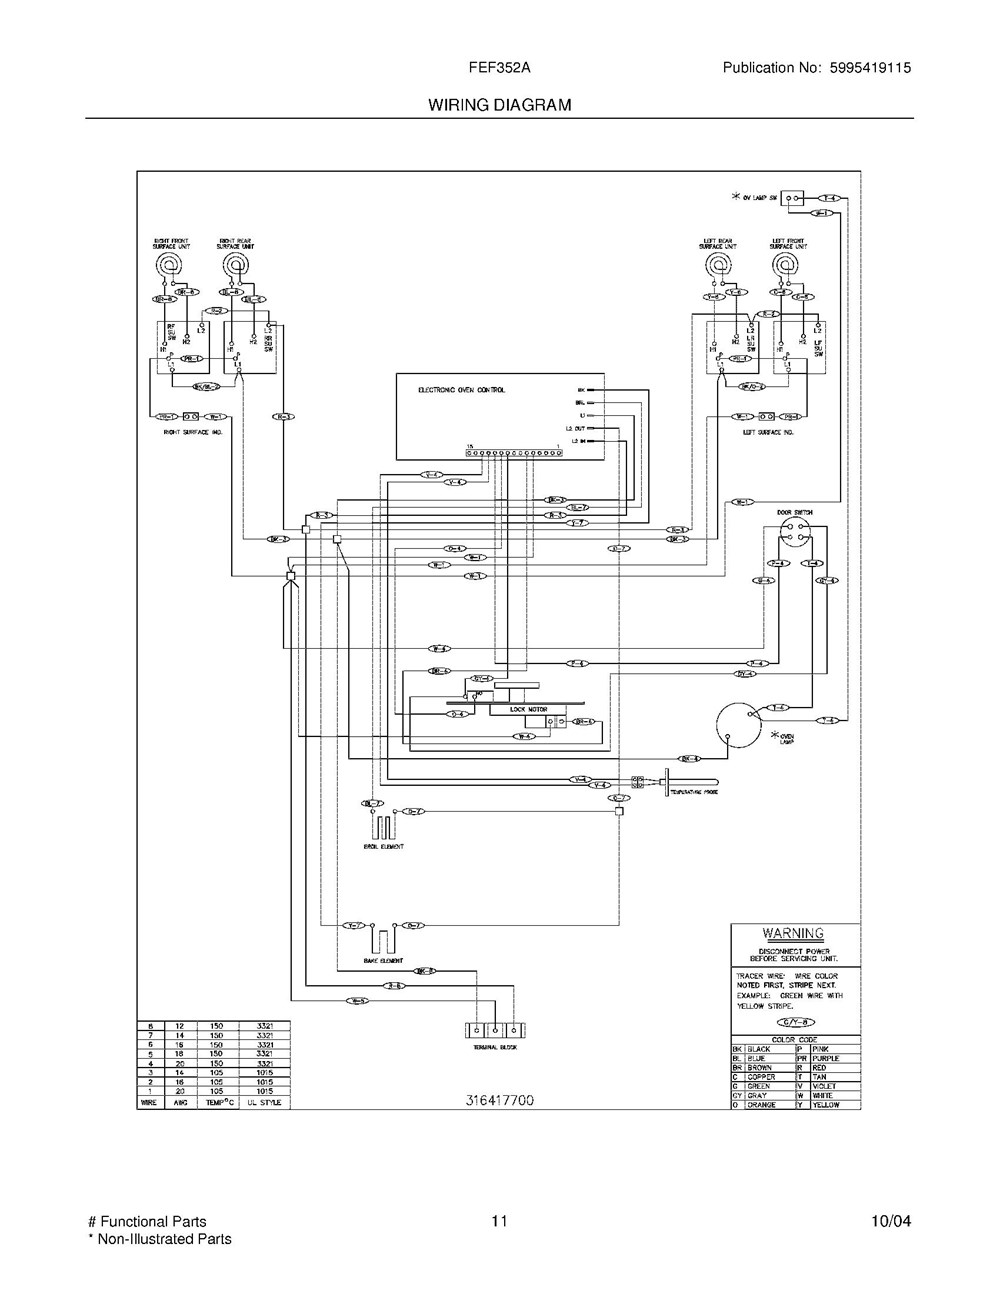 Fef352ash Frigidaire Company 07top Drawer 09door 01cover 10wiring Diagram 11wiring